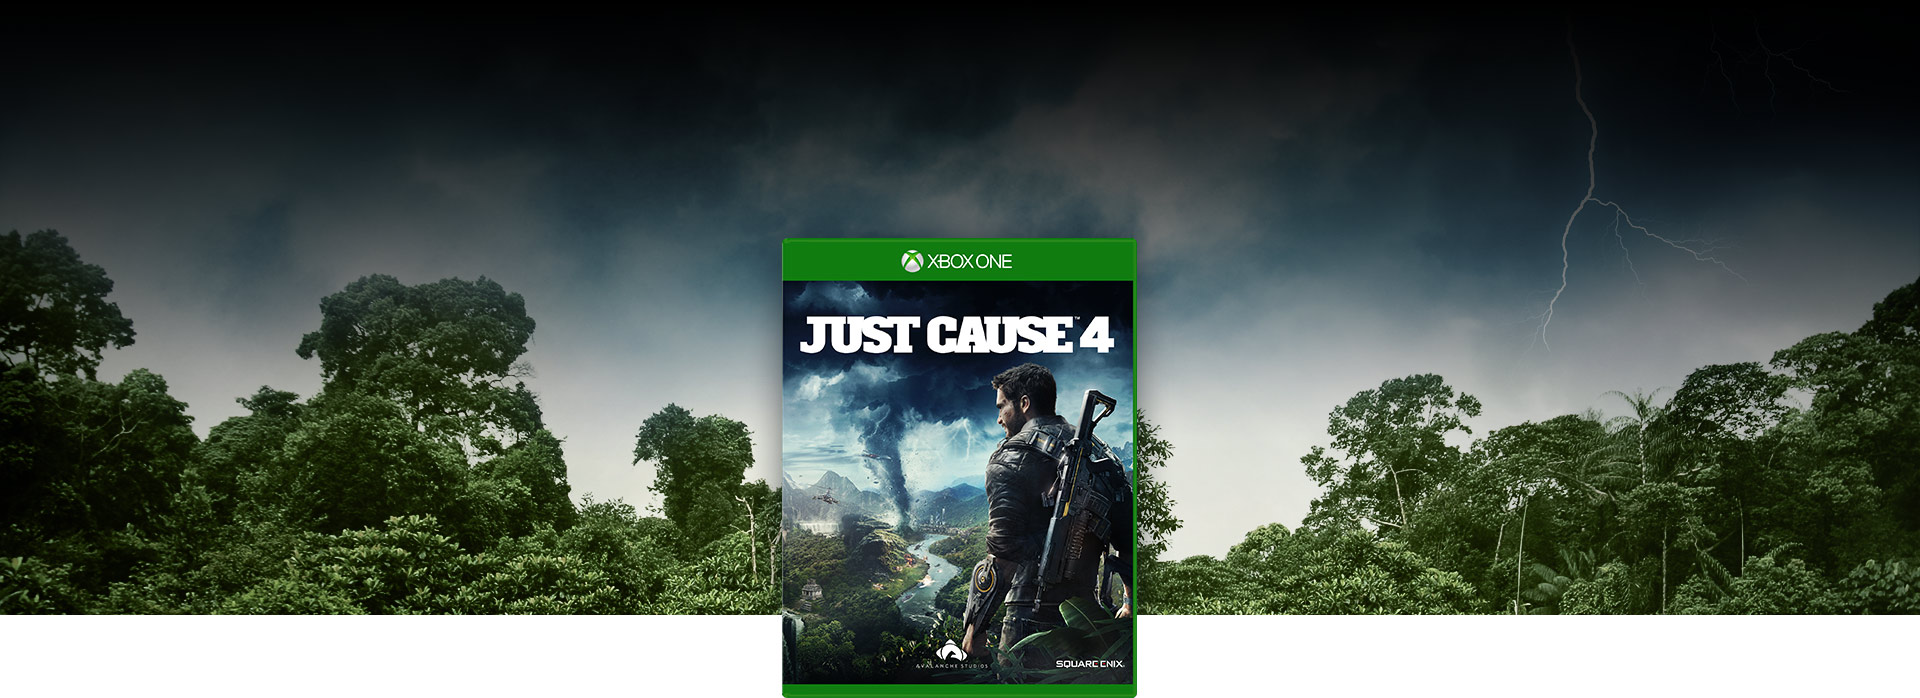 Just Cause 4 box shot, Background of a forest with lightning and dark clouds above